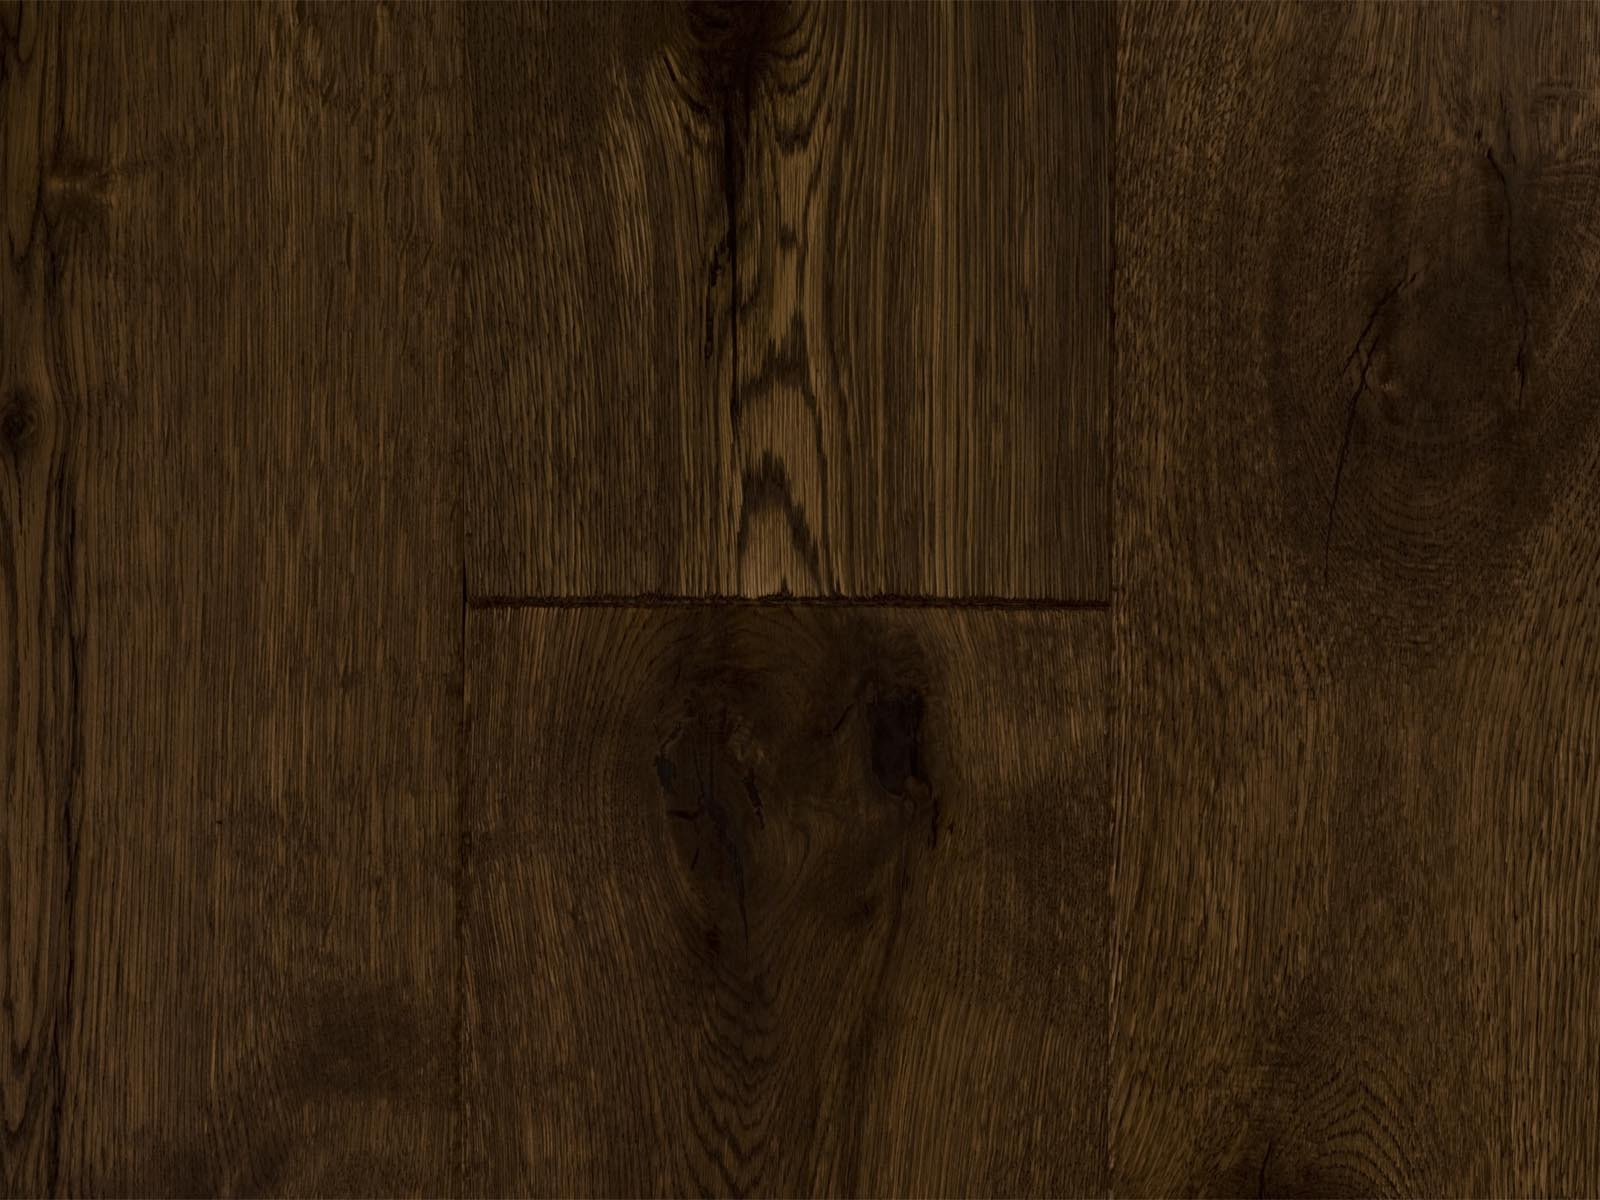 Hand Scraped Acacia Engineered Hardwood Flooring Of Provenza Hardwood Flooring Houston Tx Discount Premium Wood Floors Regarding Windsor European Oak